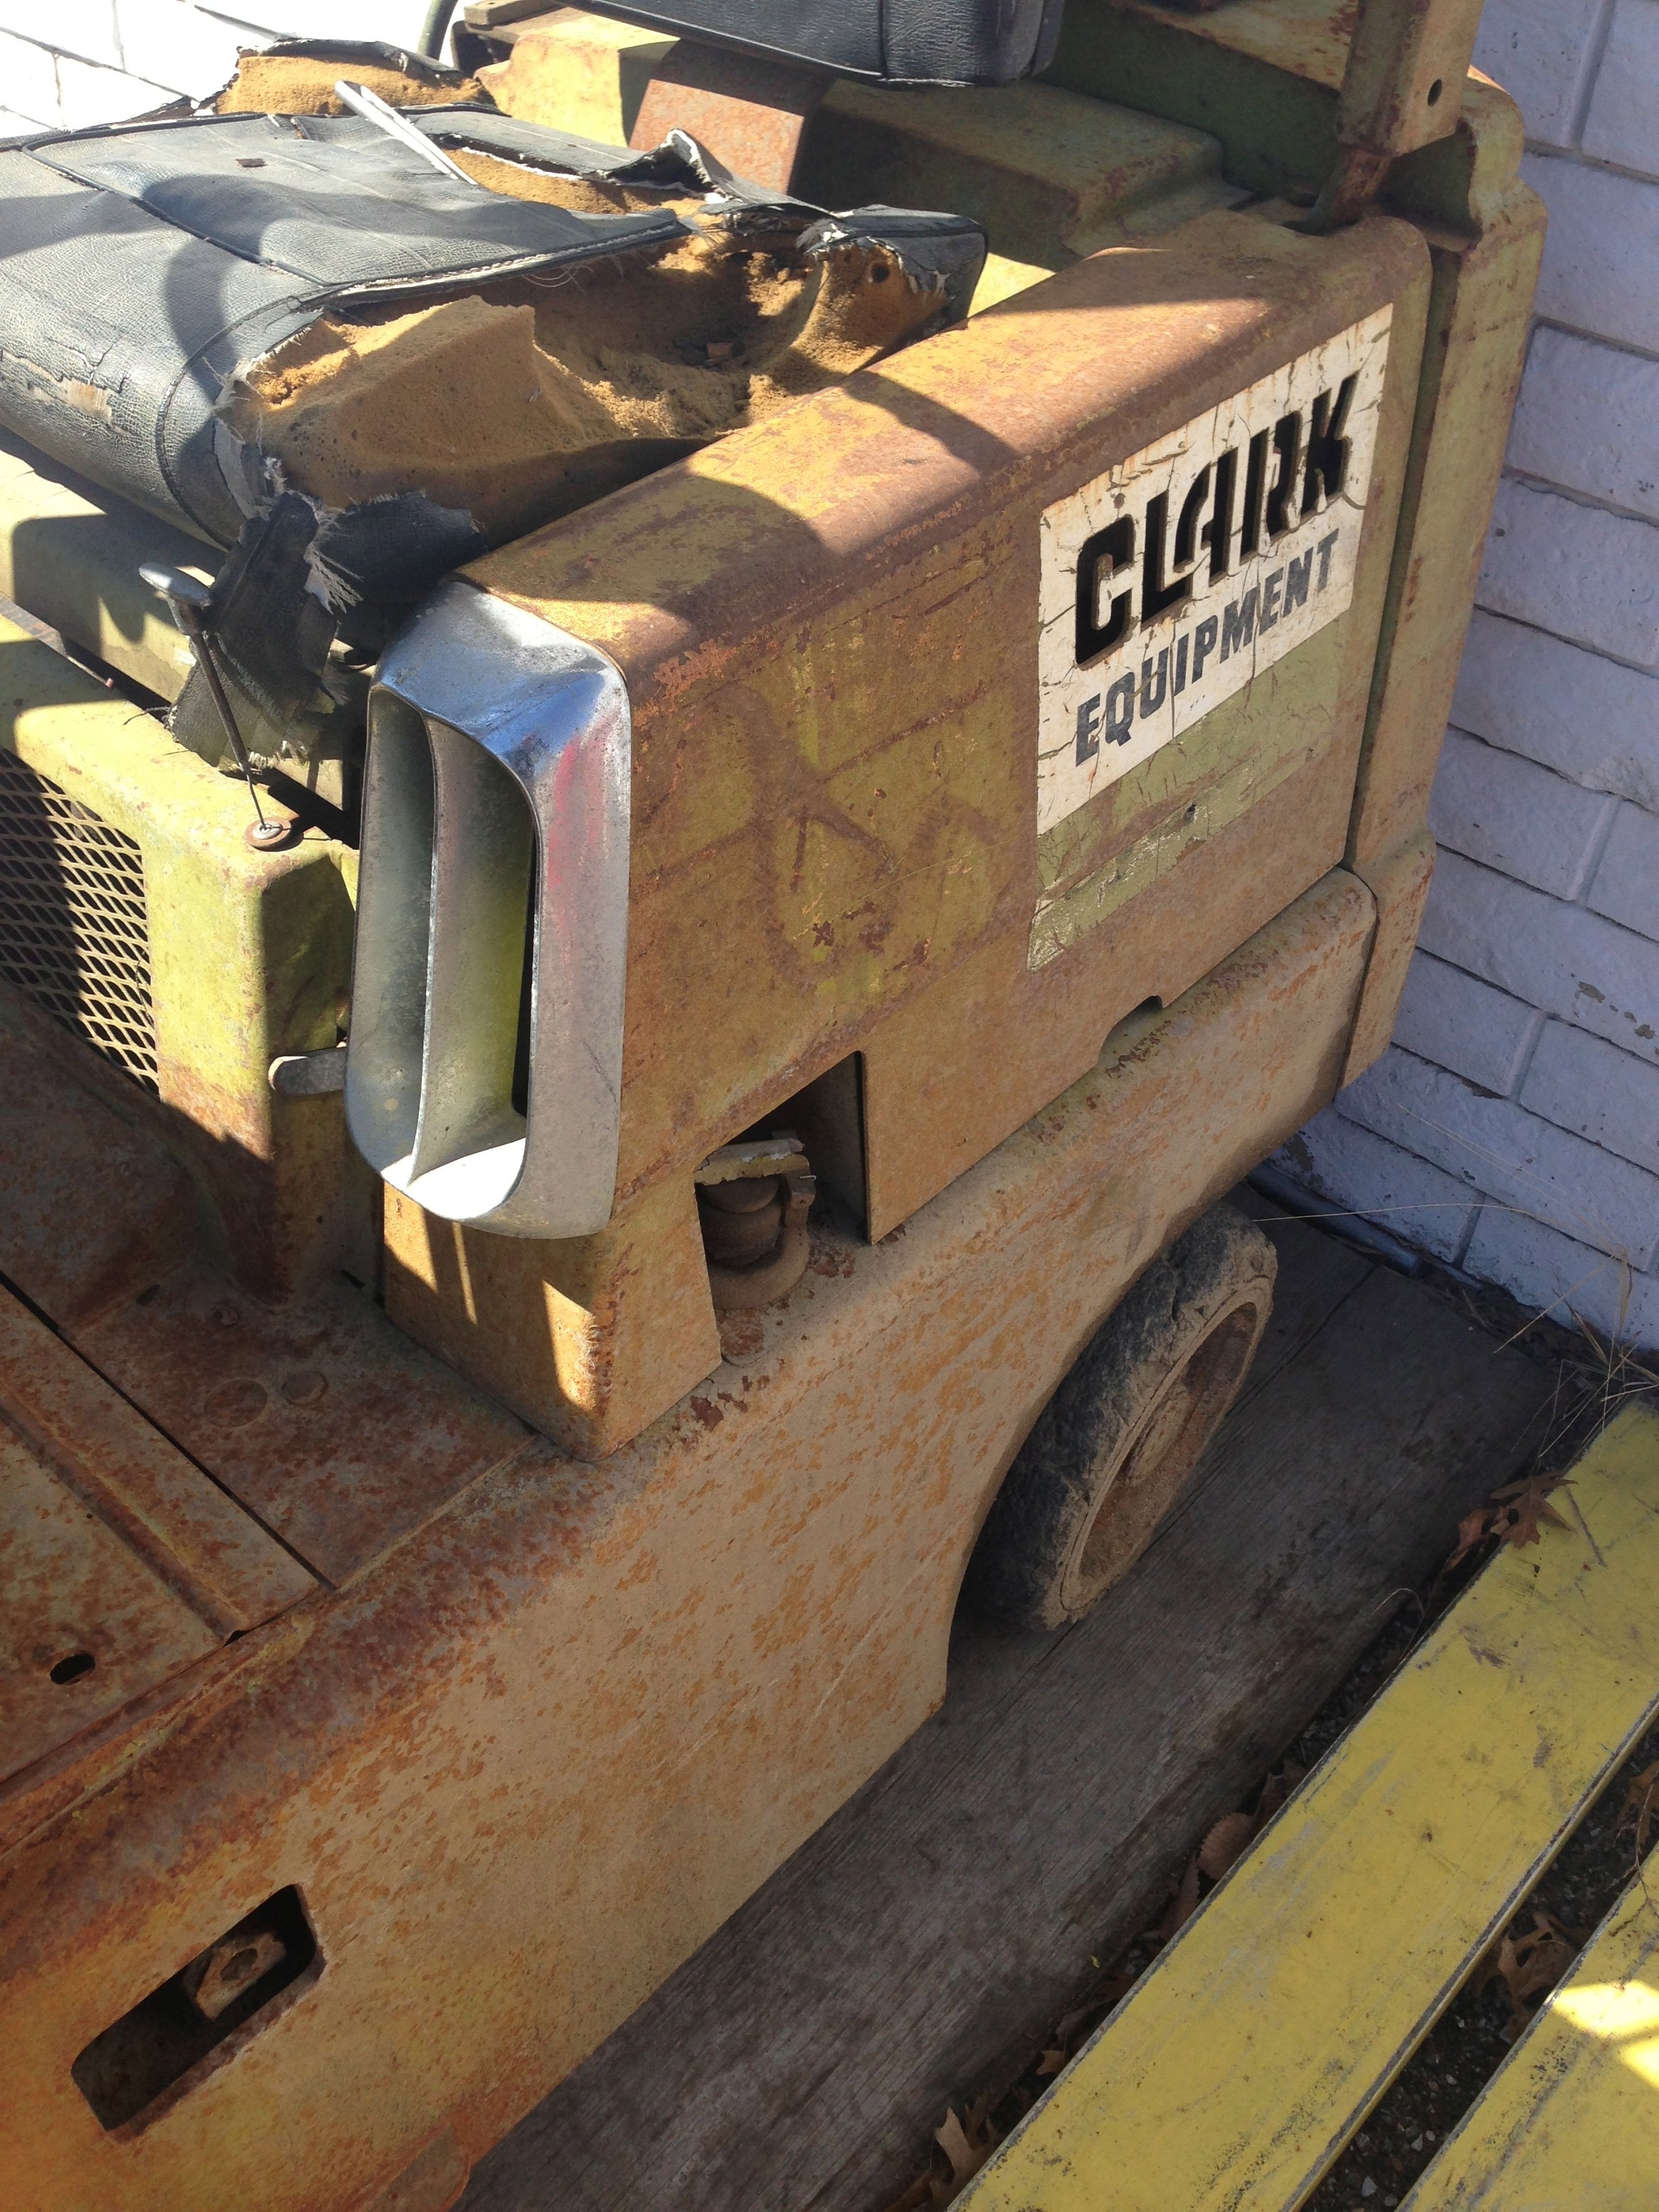 Can someone help me identify this forklifts year?